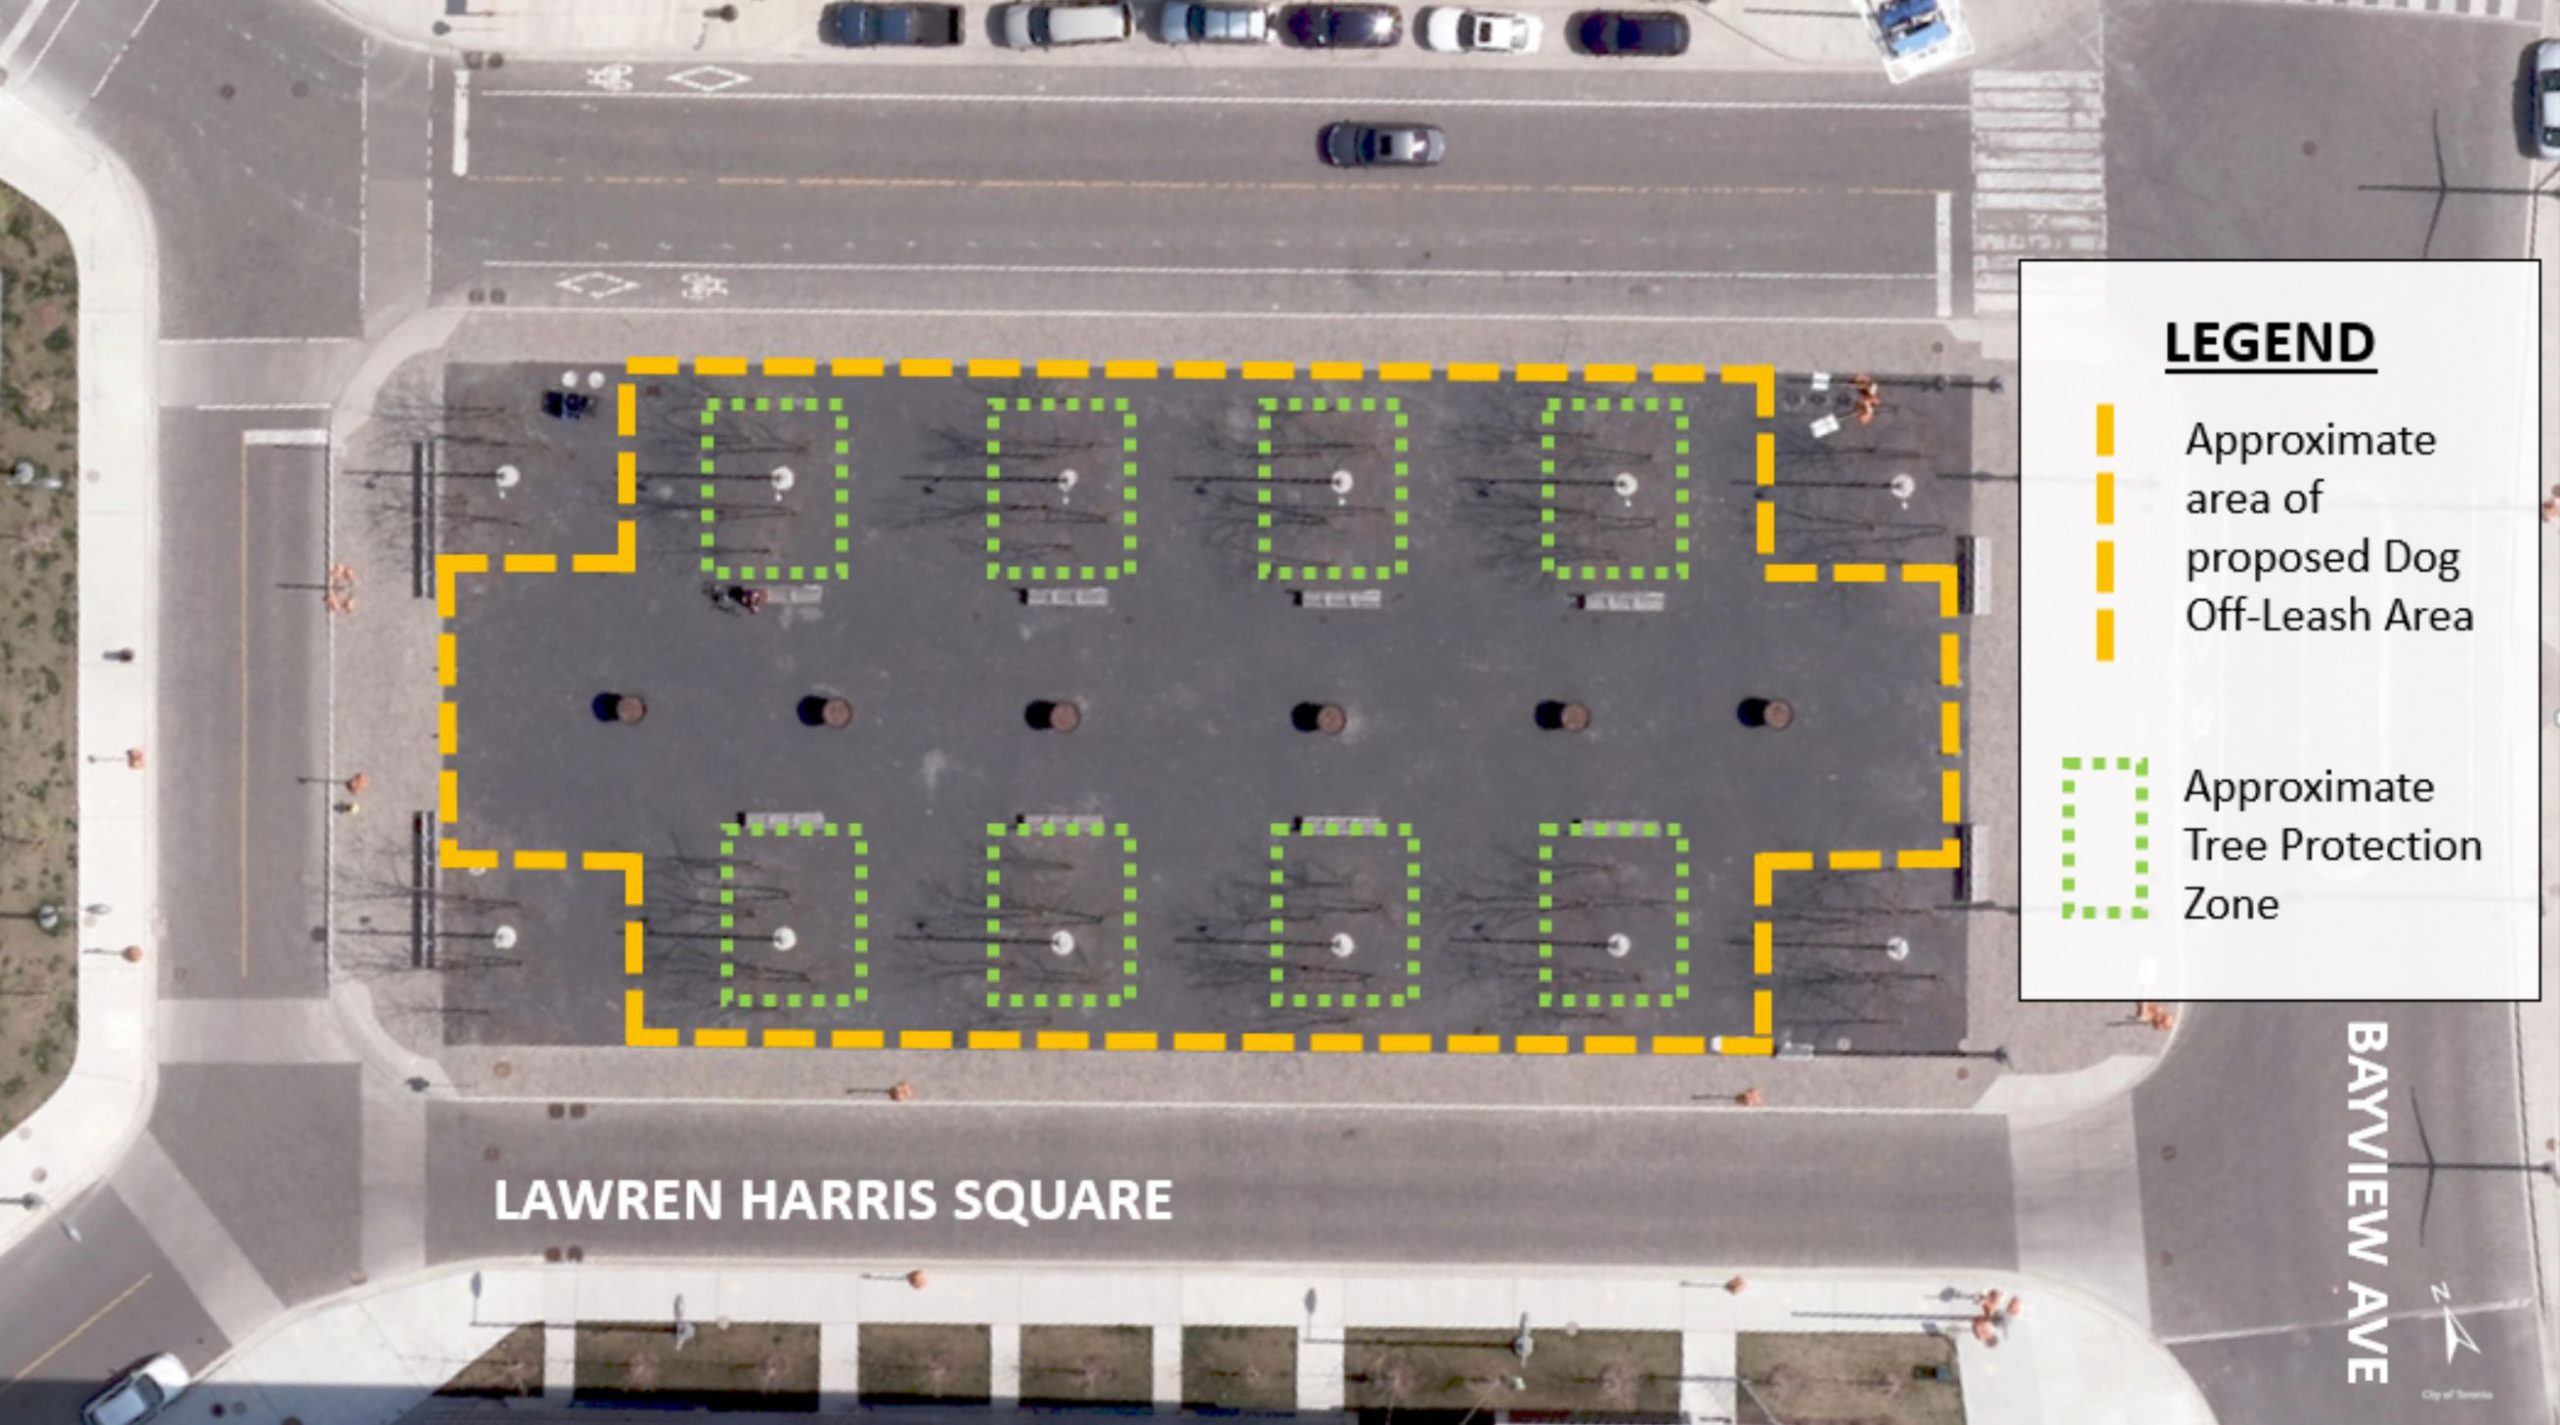 Approximate area of a potential dog off leash area in Lawren Harris square would include most of the square except for the treed corners. Each tree within the square would be fenced off as part of the required tree protection zones.